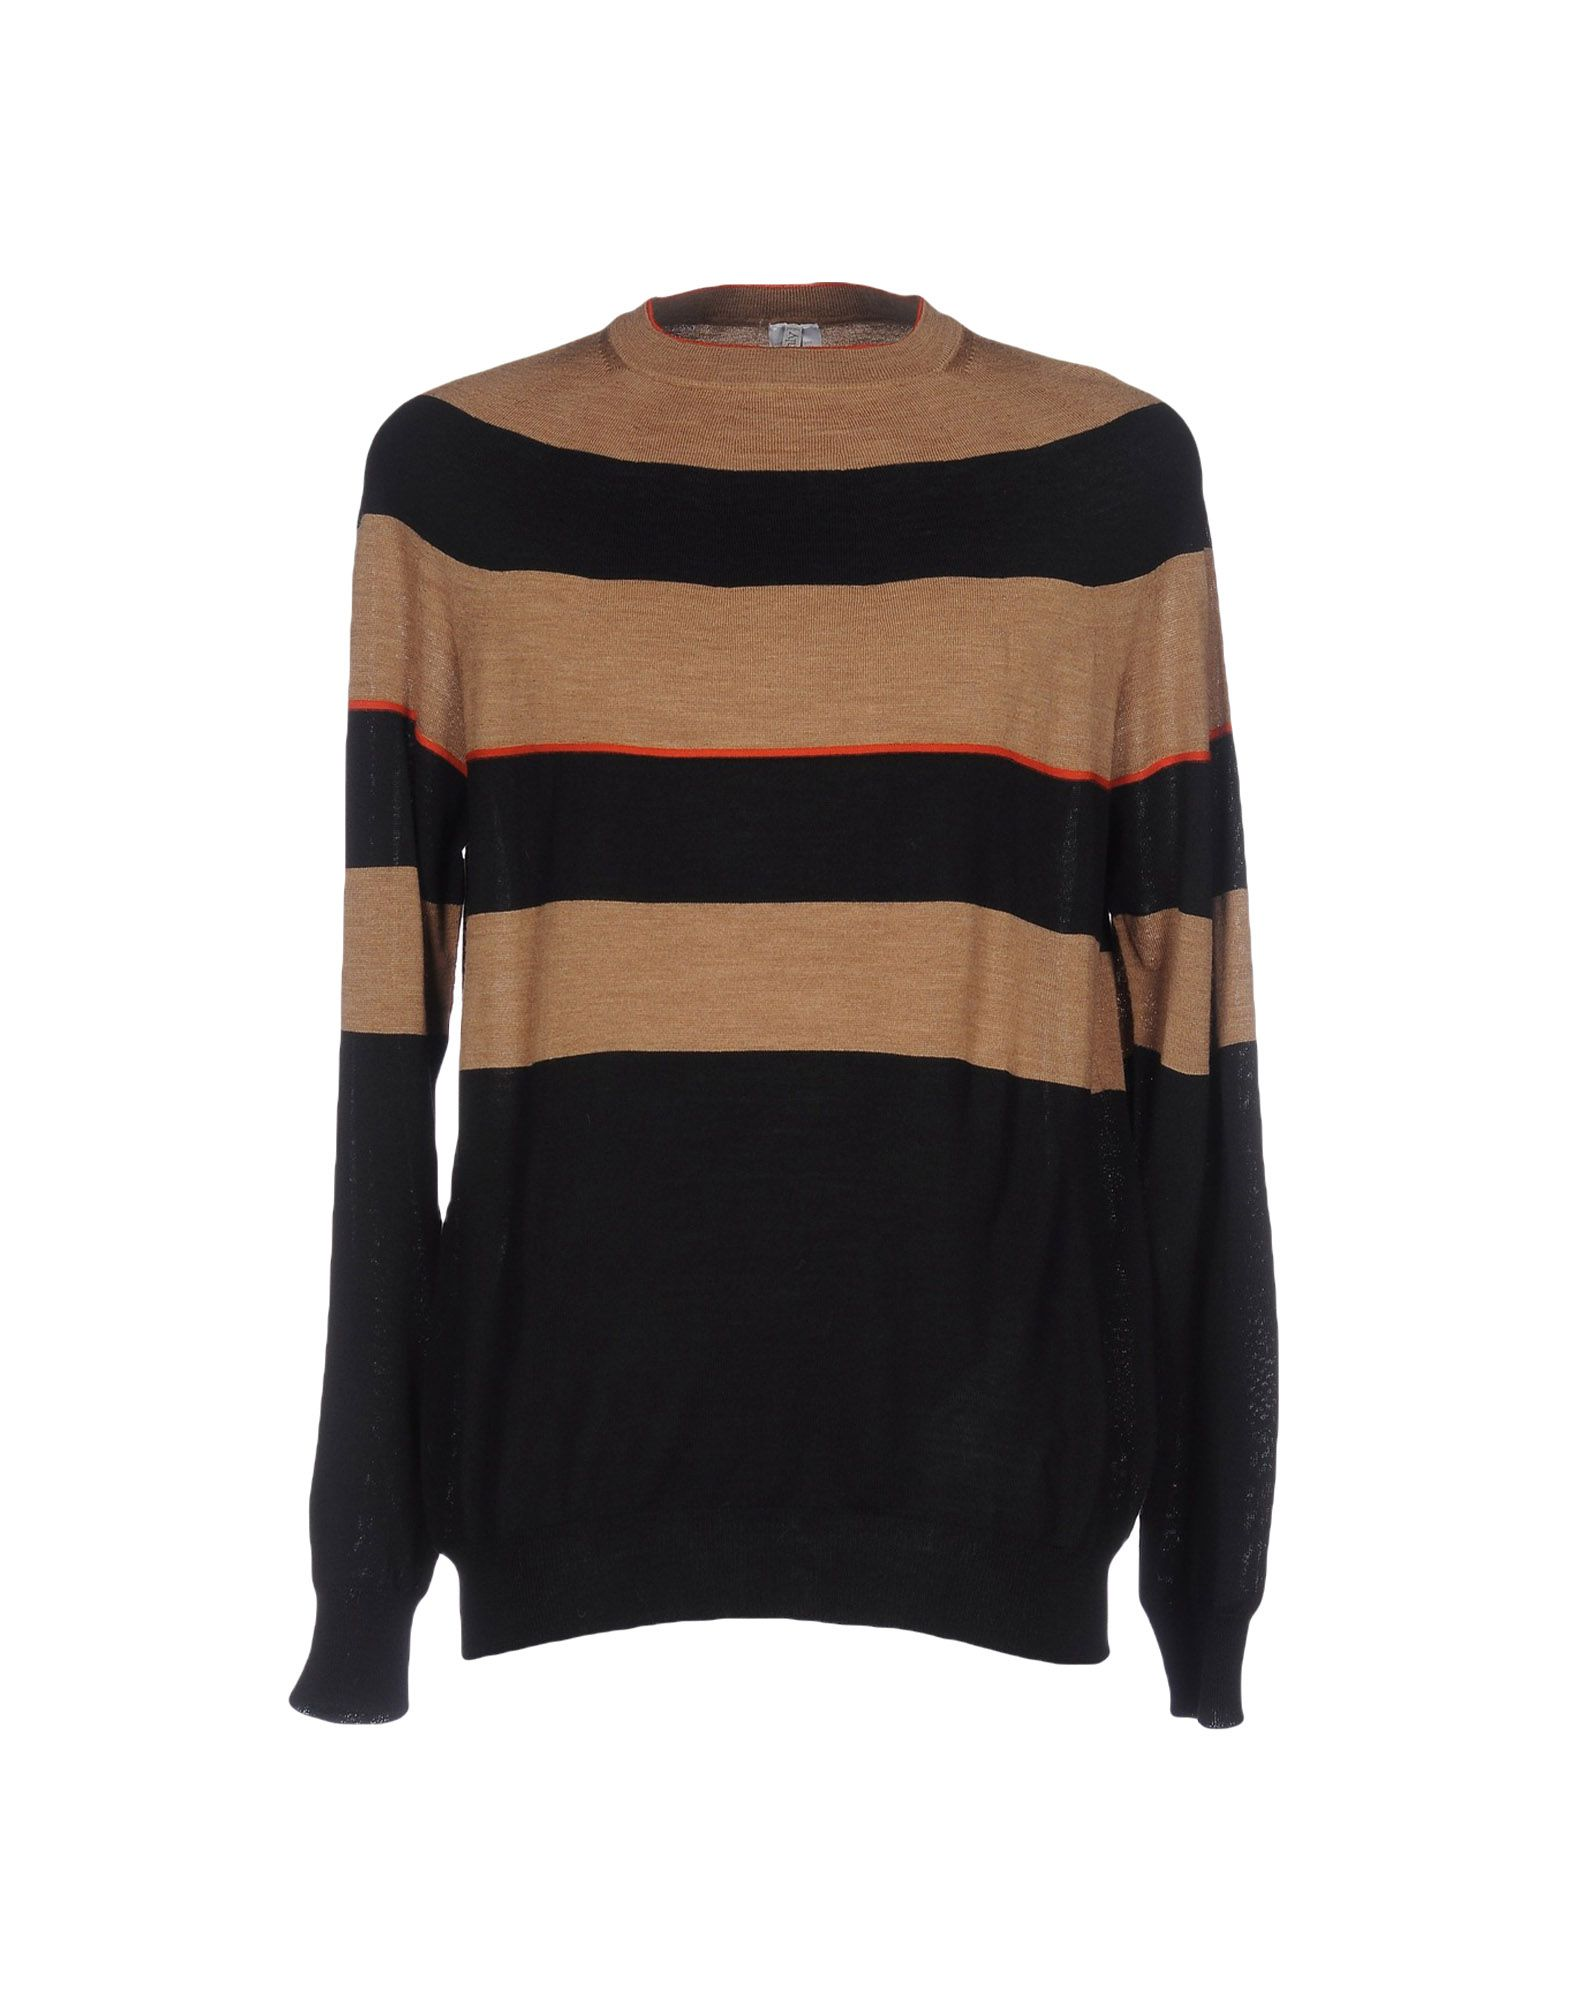 AIMO RICHLY Sweater in Camel